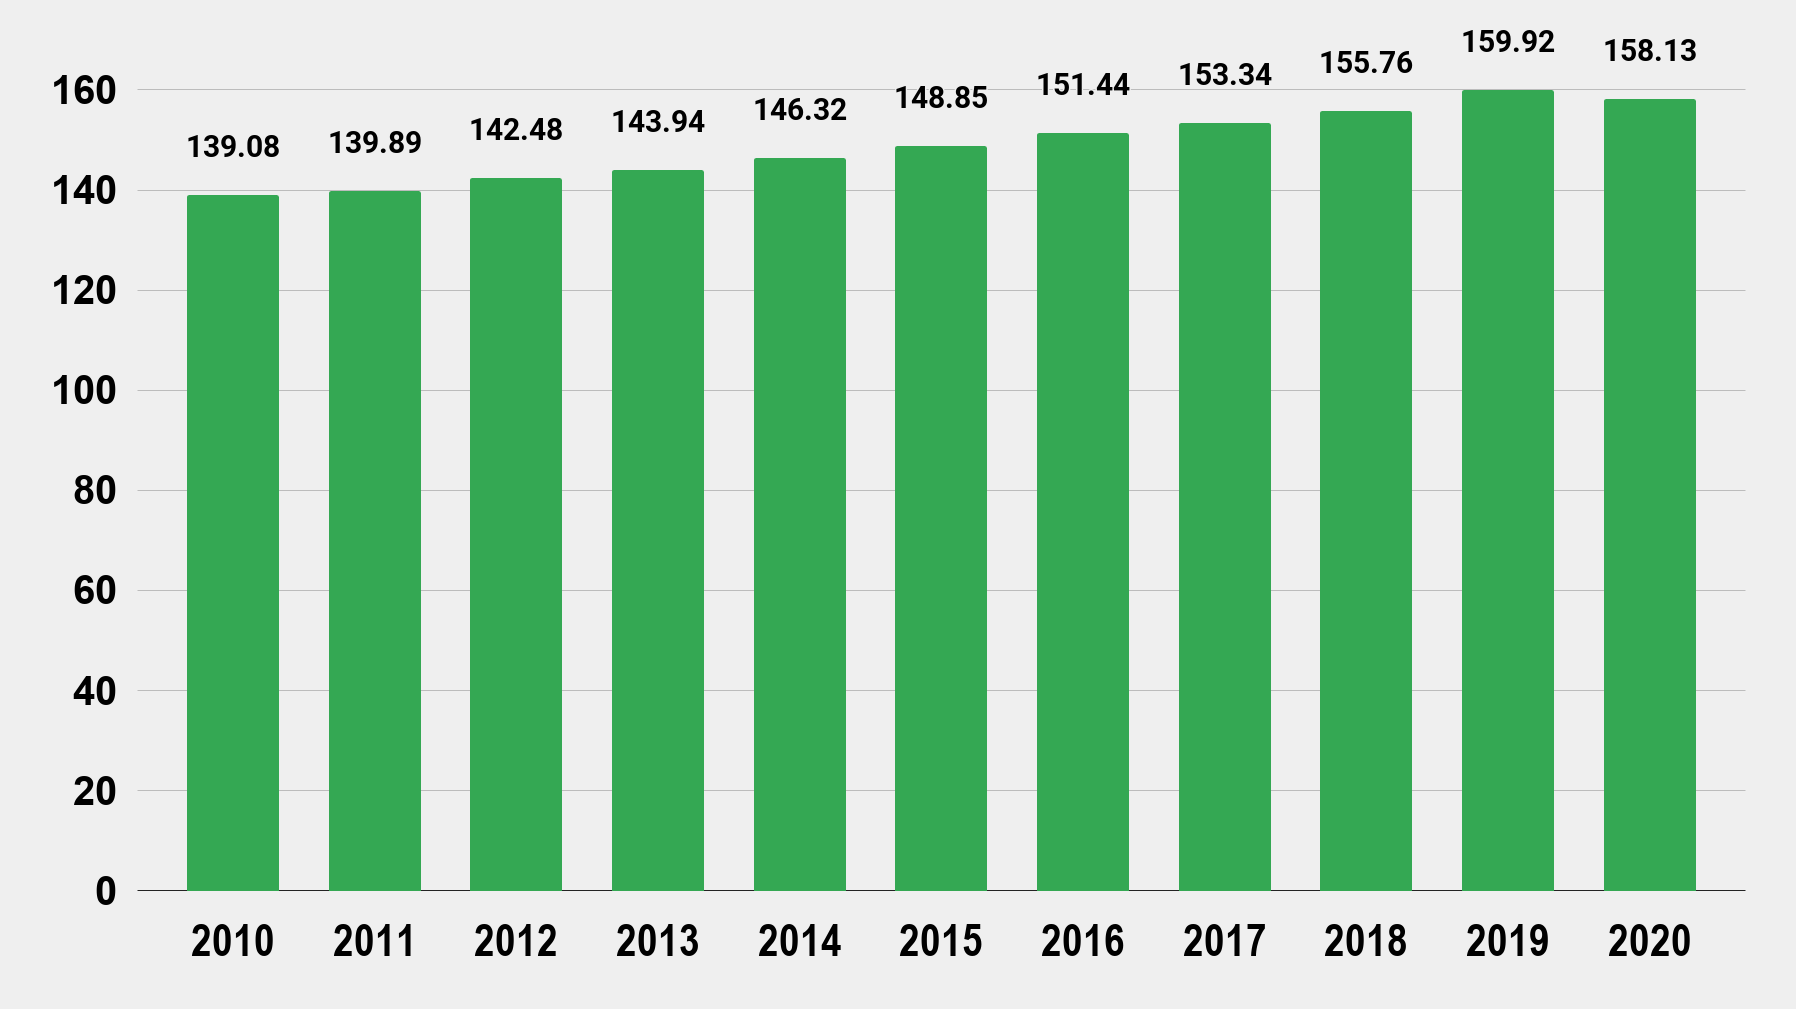 Employment in the United States from 2010 to 2020 (in millions) Charts Graphs Stats